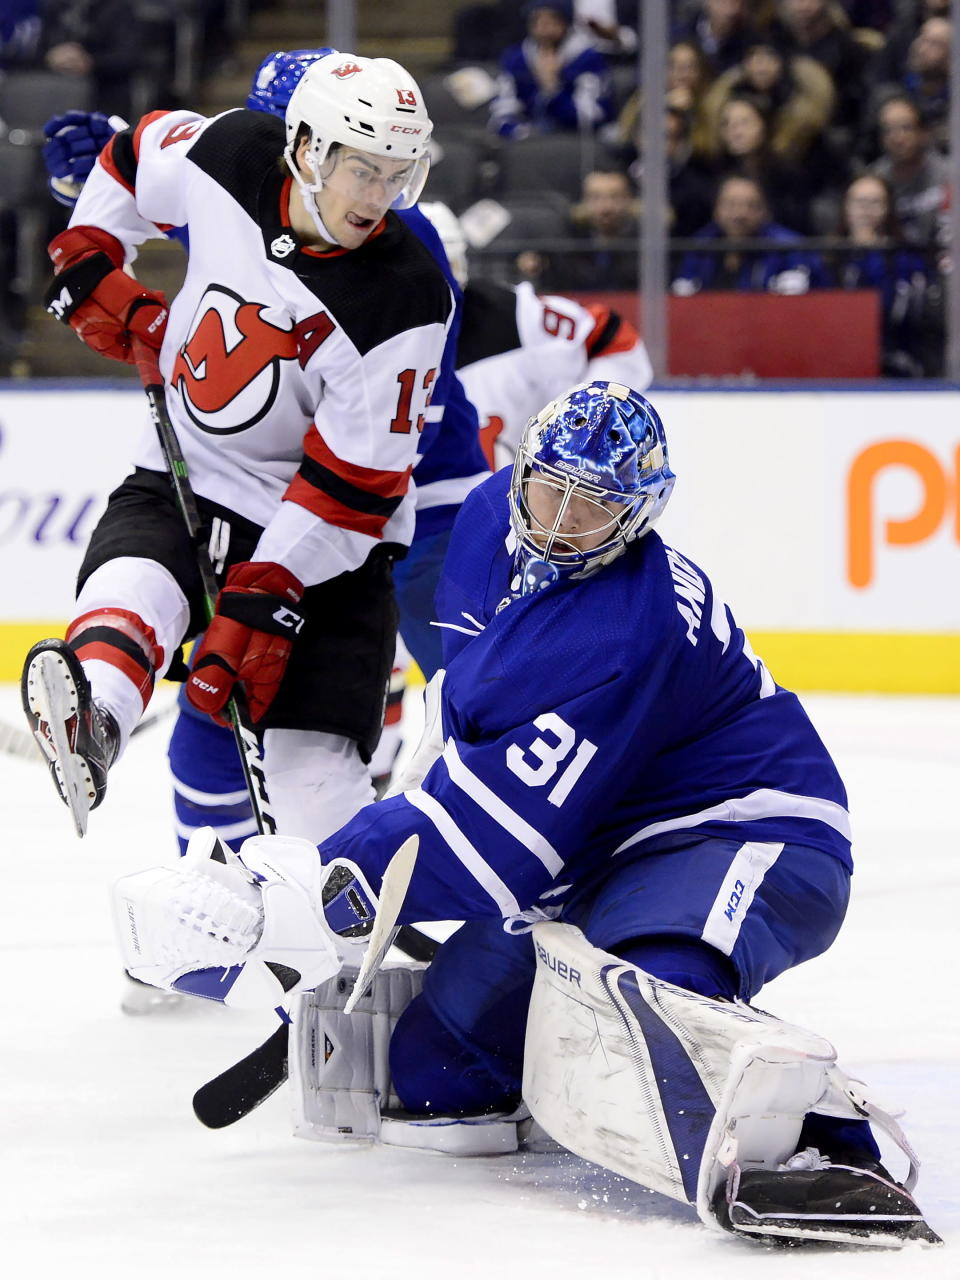 Toronto Maple Leafs goaltender Frederik Andersen (31) looks back as the puck goes in, next to New Jersey Devils center Nico Hischier (13) during the third period of an NHL hockey game Tuesday, Jan. 14, 2020, in Toronto. (Frank Gunn/The Canadian Press via AP)